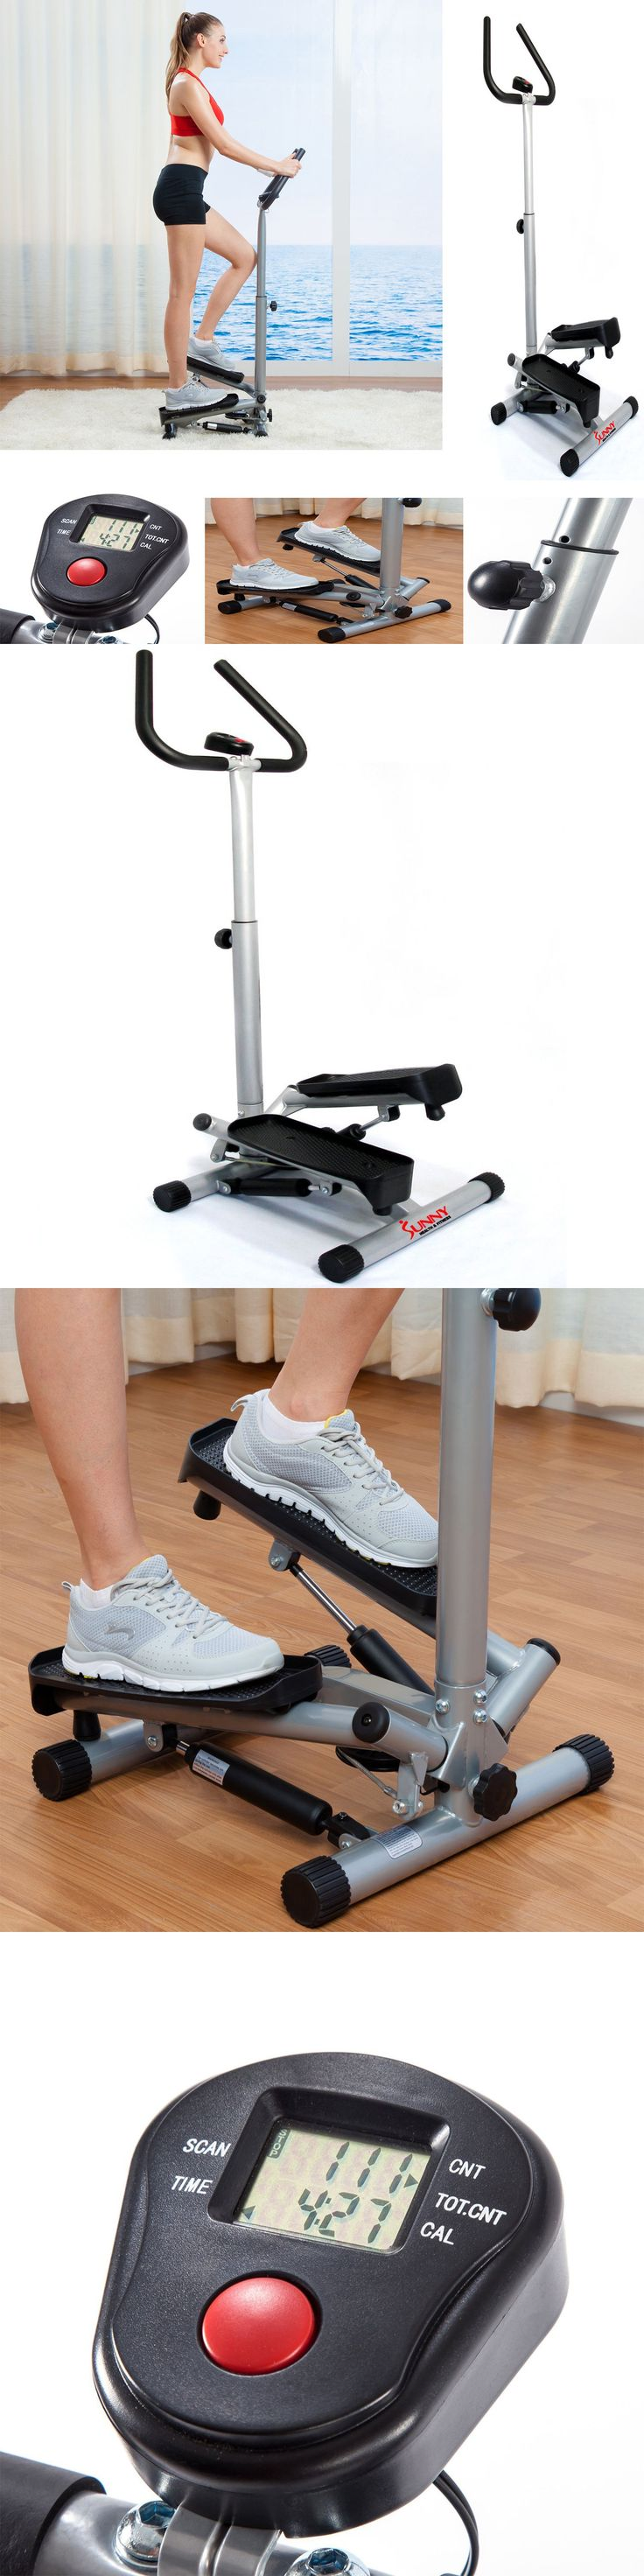 Stair Machines and Steppers 28062: Elliptical Exercise Machine Fitness Twister Stepper Climber Cardio Workout Gym -> BUY IT NOW ONLY: $73.42 on eBay!